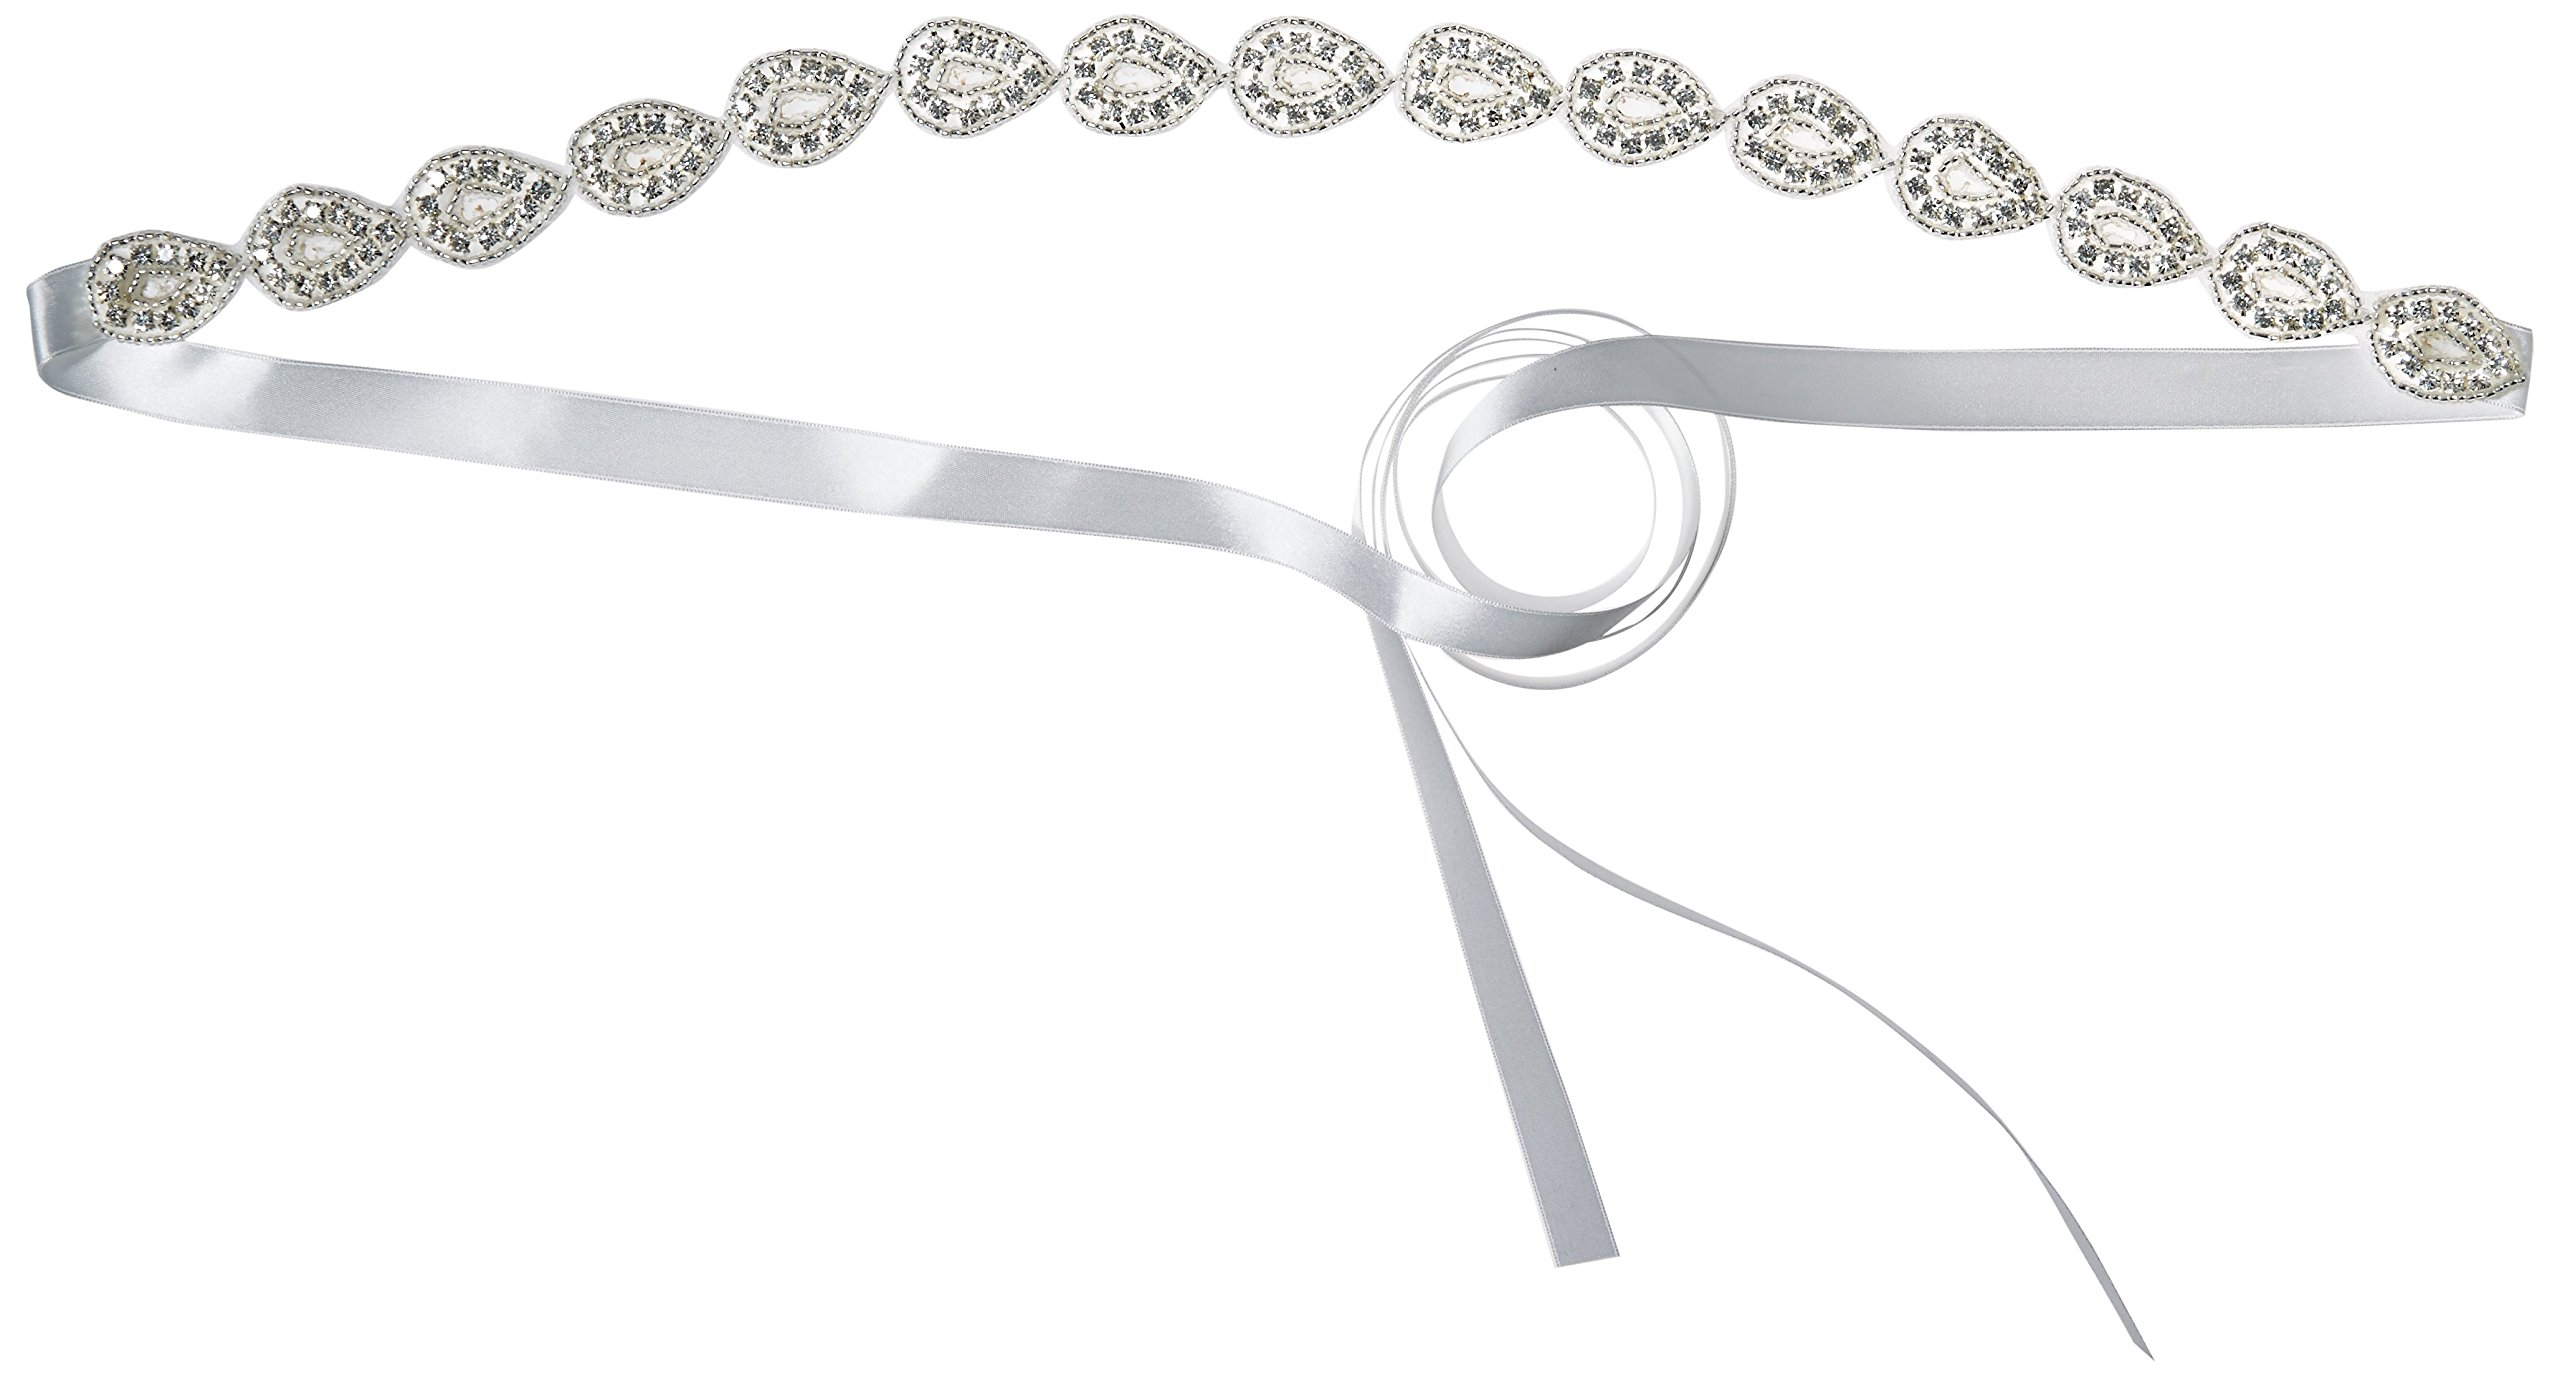 J-Picone Women's Dylan Hard Rock Crystal Bridal Belt with 18 Inch Tear Drop Crystal Chain, Ivory, One Size by J-Picone